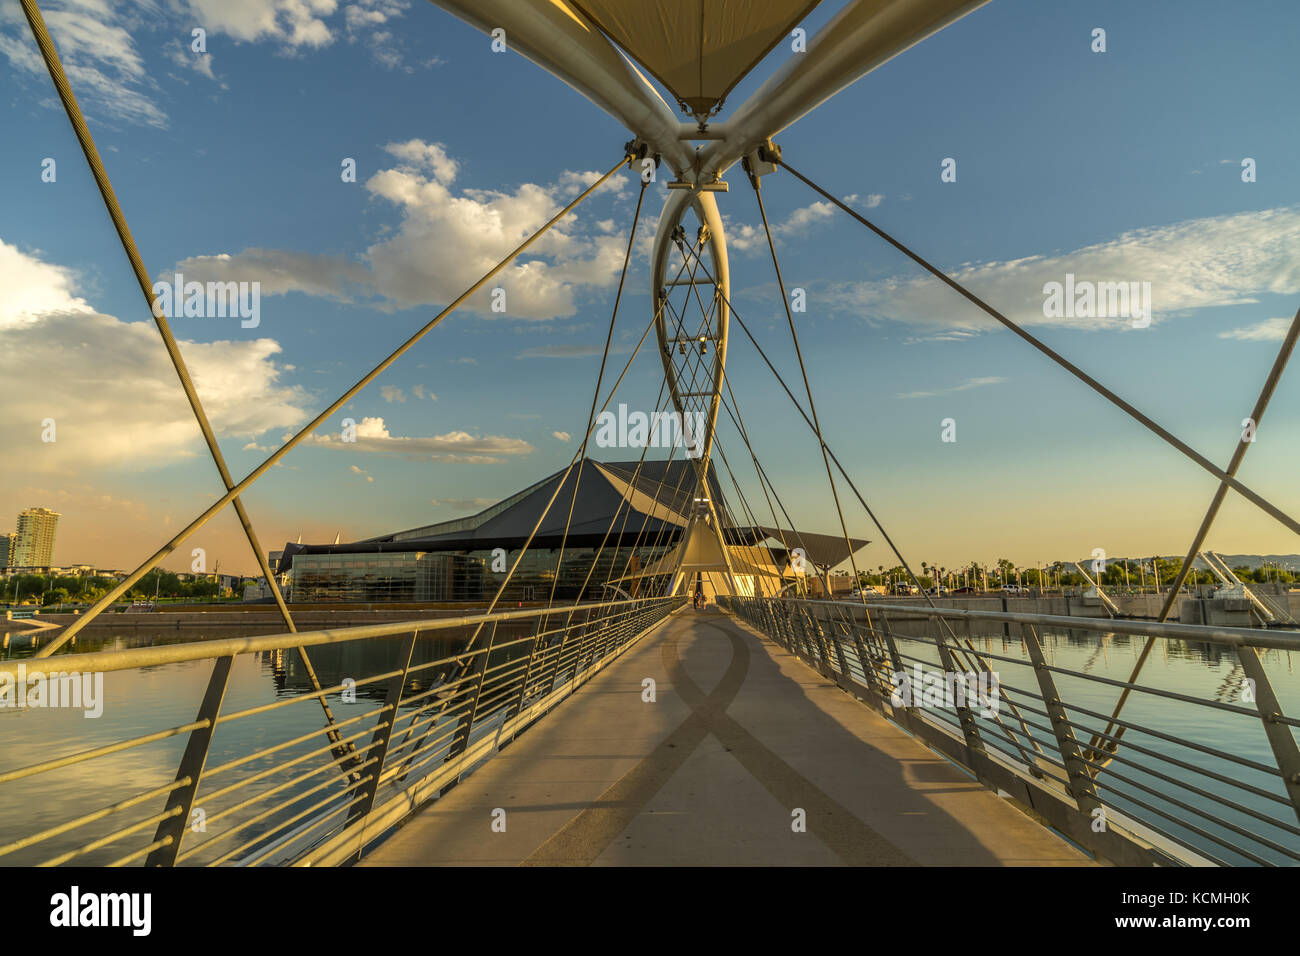 the Town lake Pedestrian Bridge over the Salt River in Tempe Arizona near the Tempe Center for Arts. - Stock Image